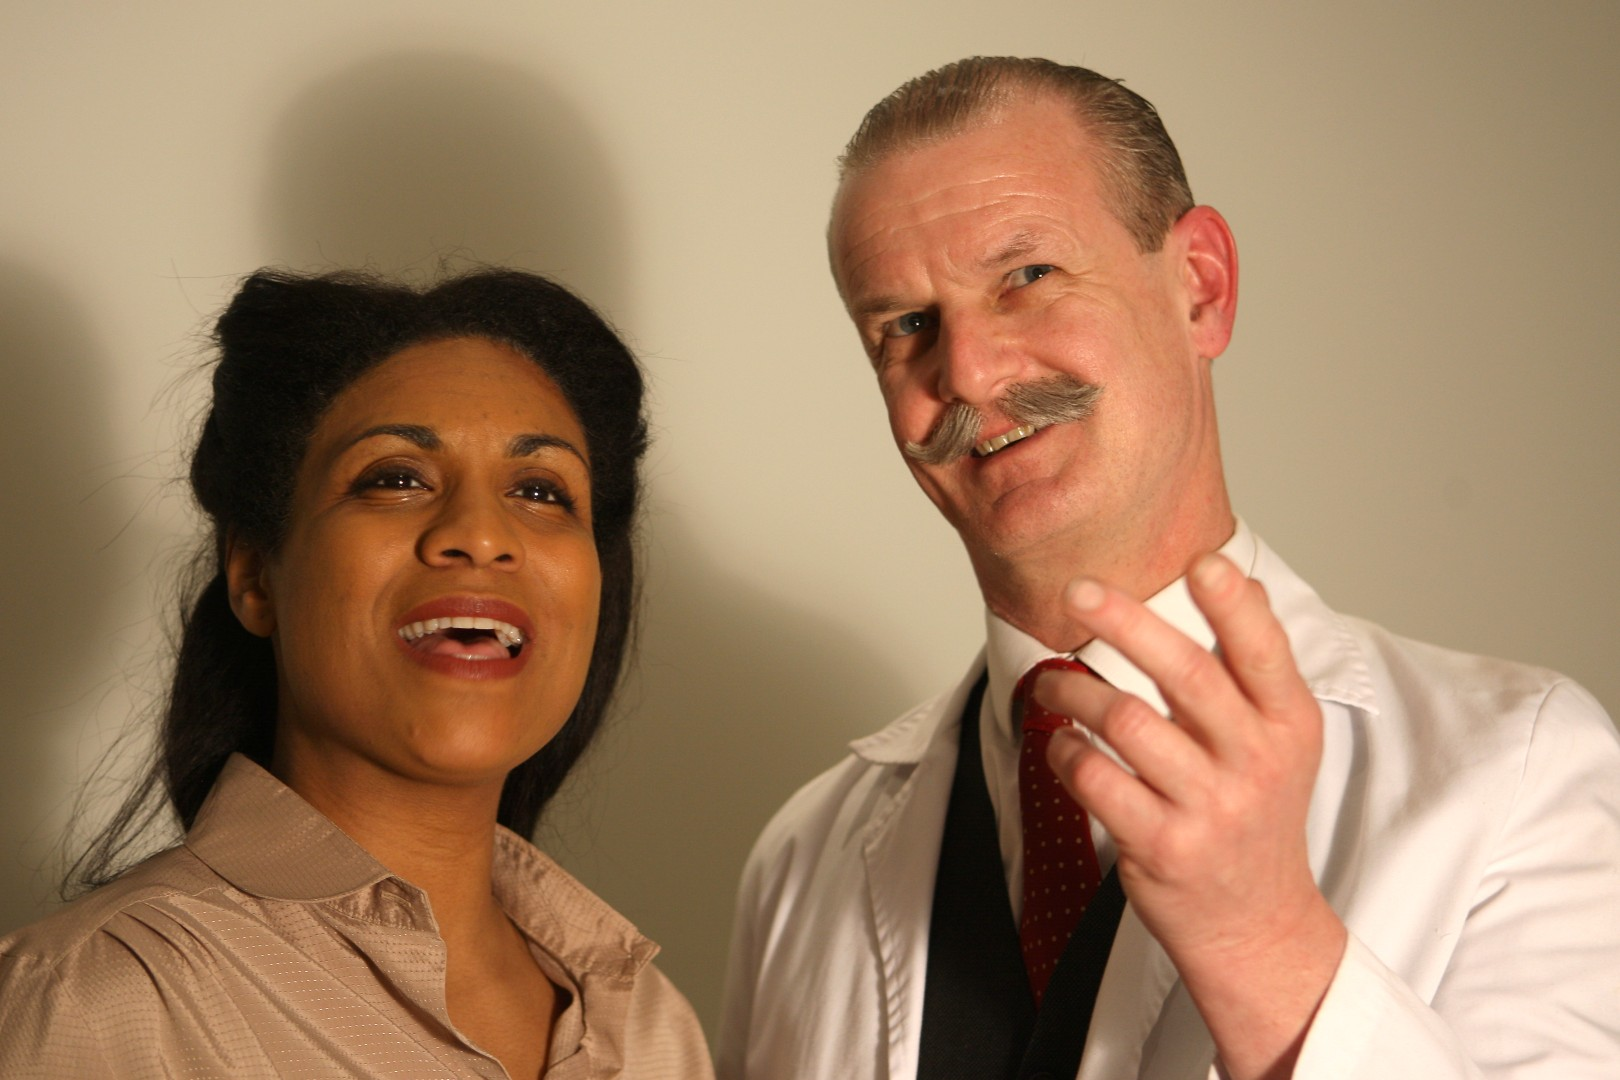 A mixed race lady in beige chemise and mustachioed biologist in labcoat pose emphatically together